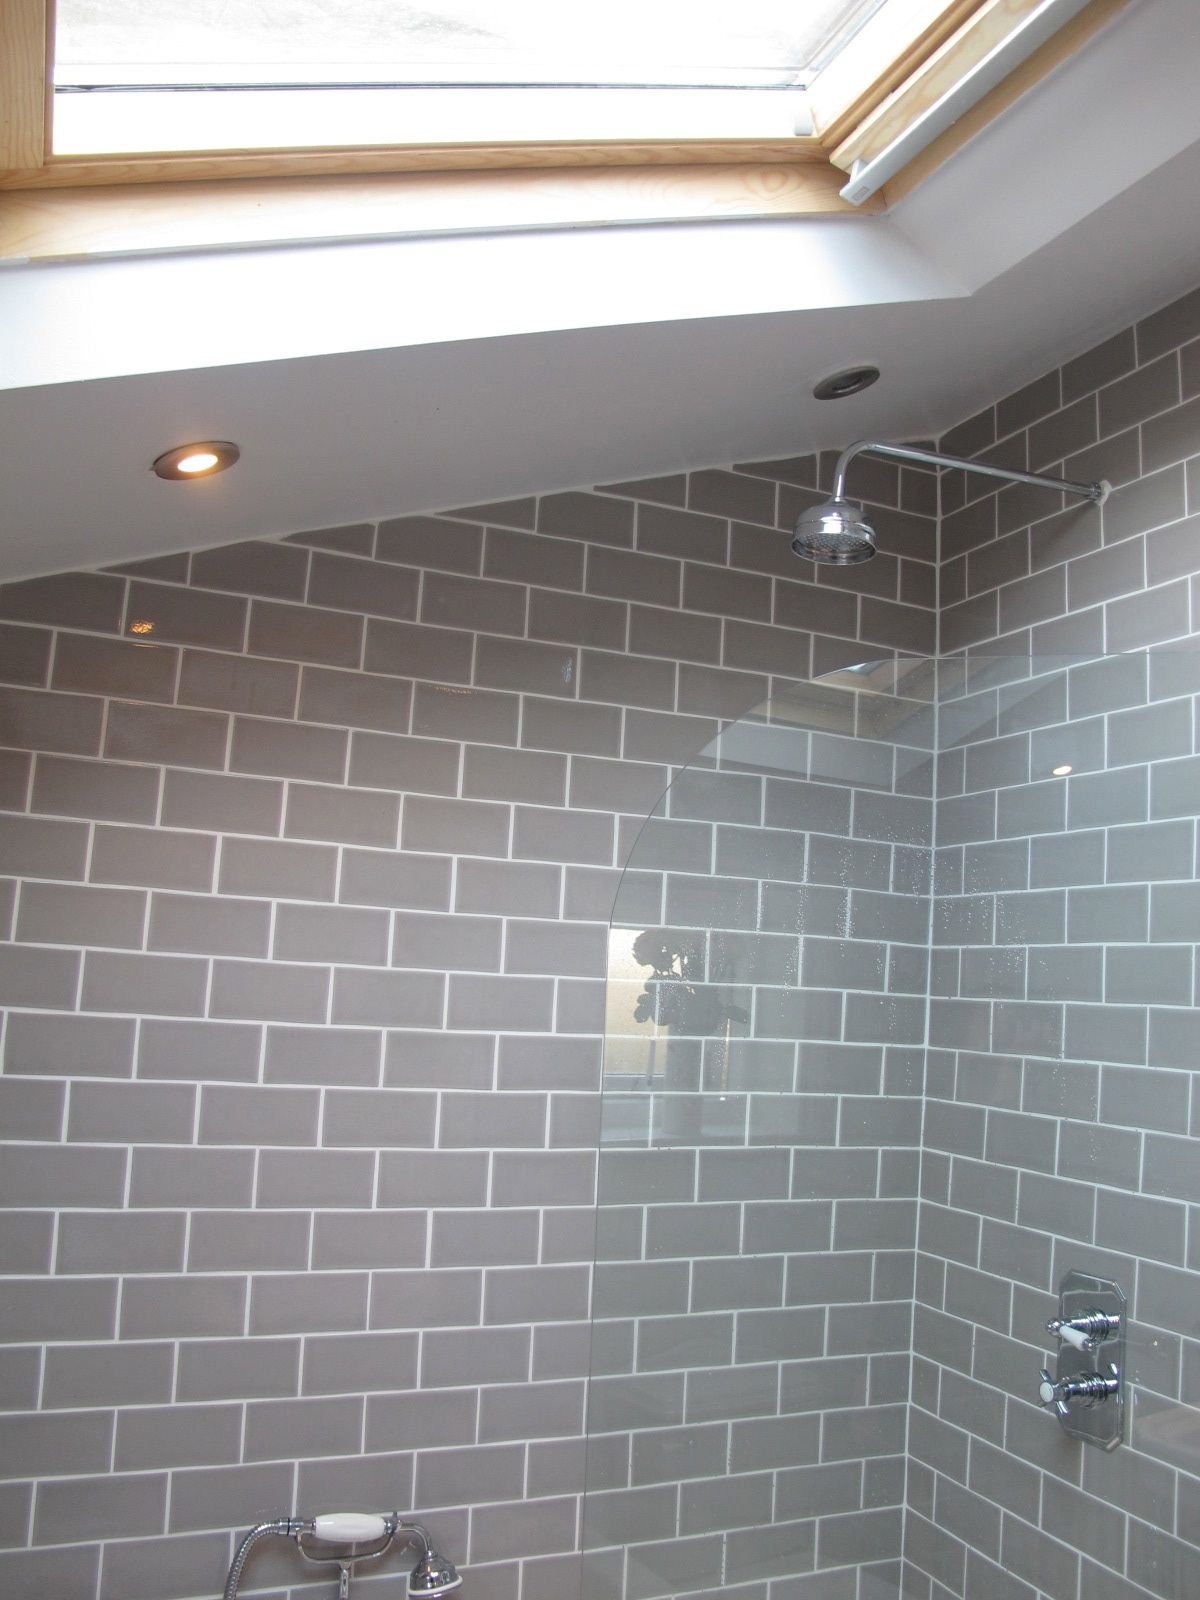 Like The Grey Subway Tile For The Bathtub Surround  But Maybe A Blue Gray  Would Be More Feminine?